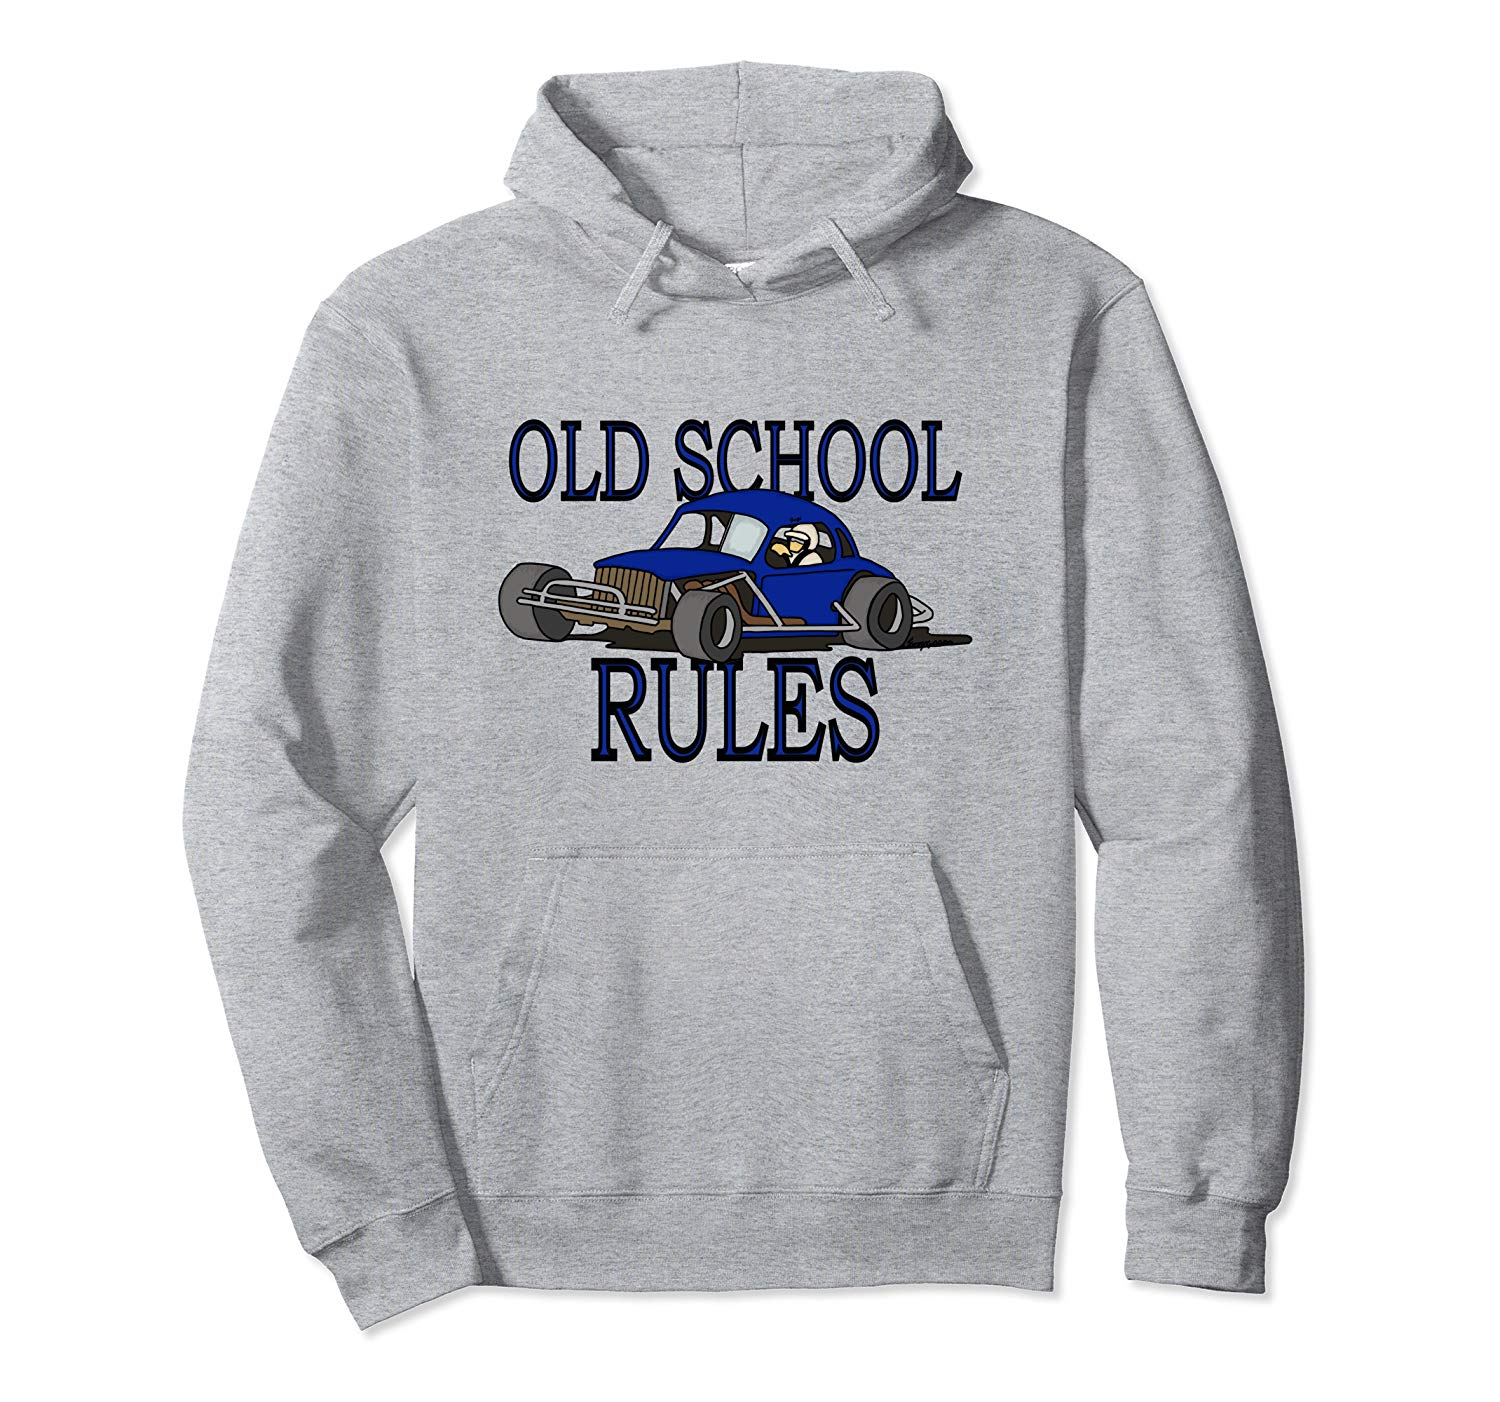 Stock Car Shirt OLD SCHOOL RULES Blue coupe racing gift hoodie